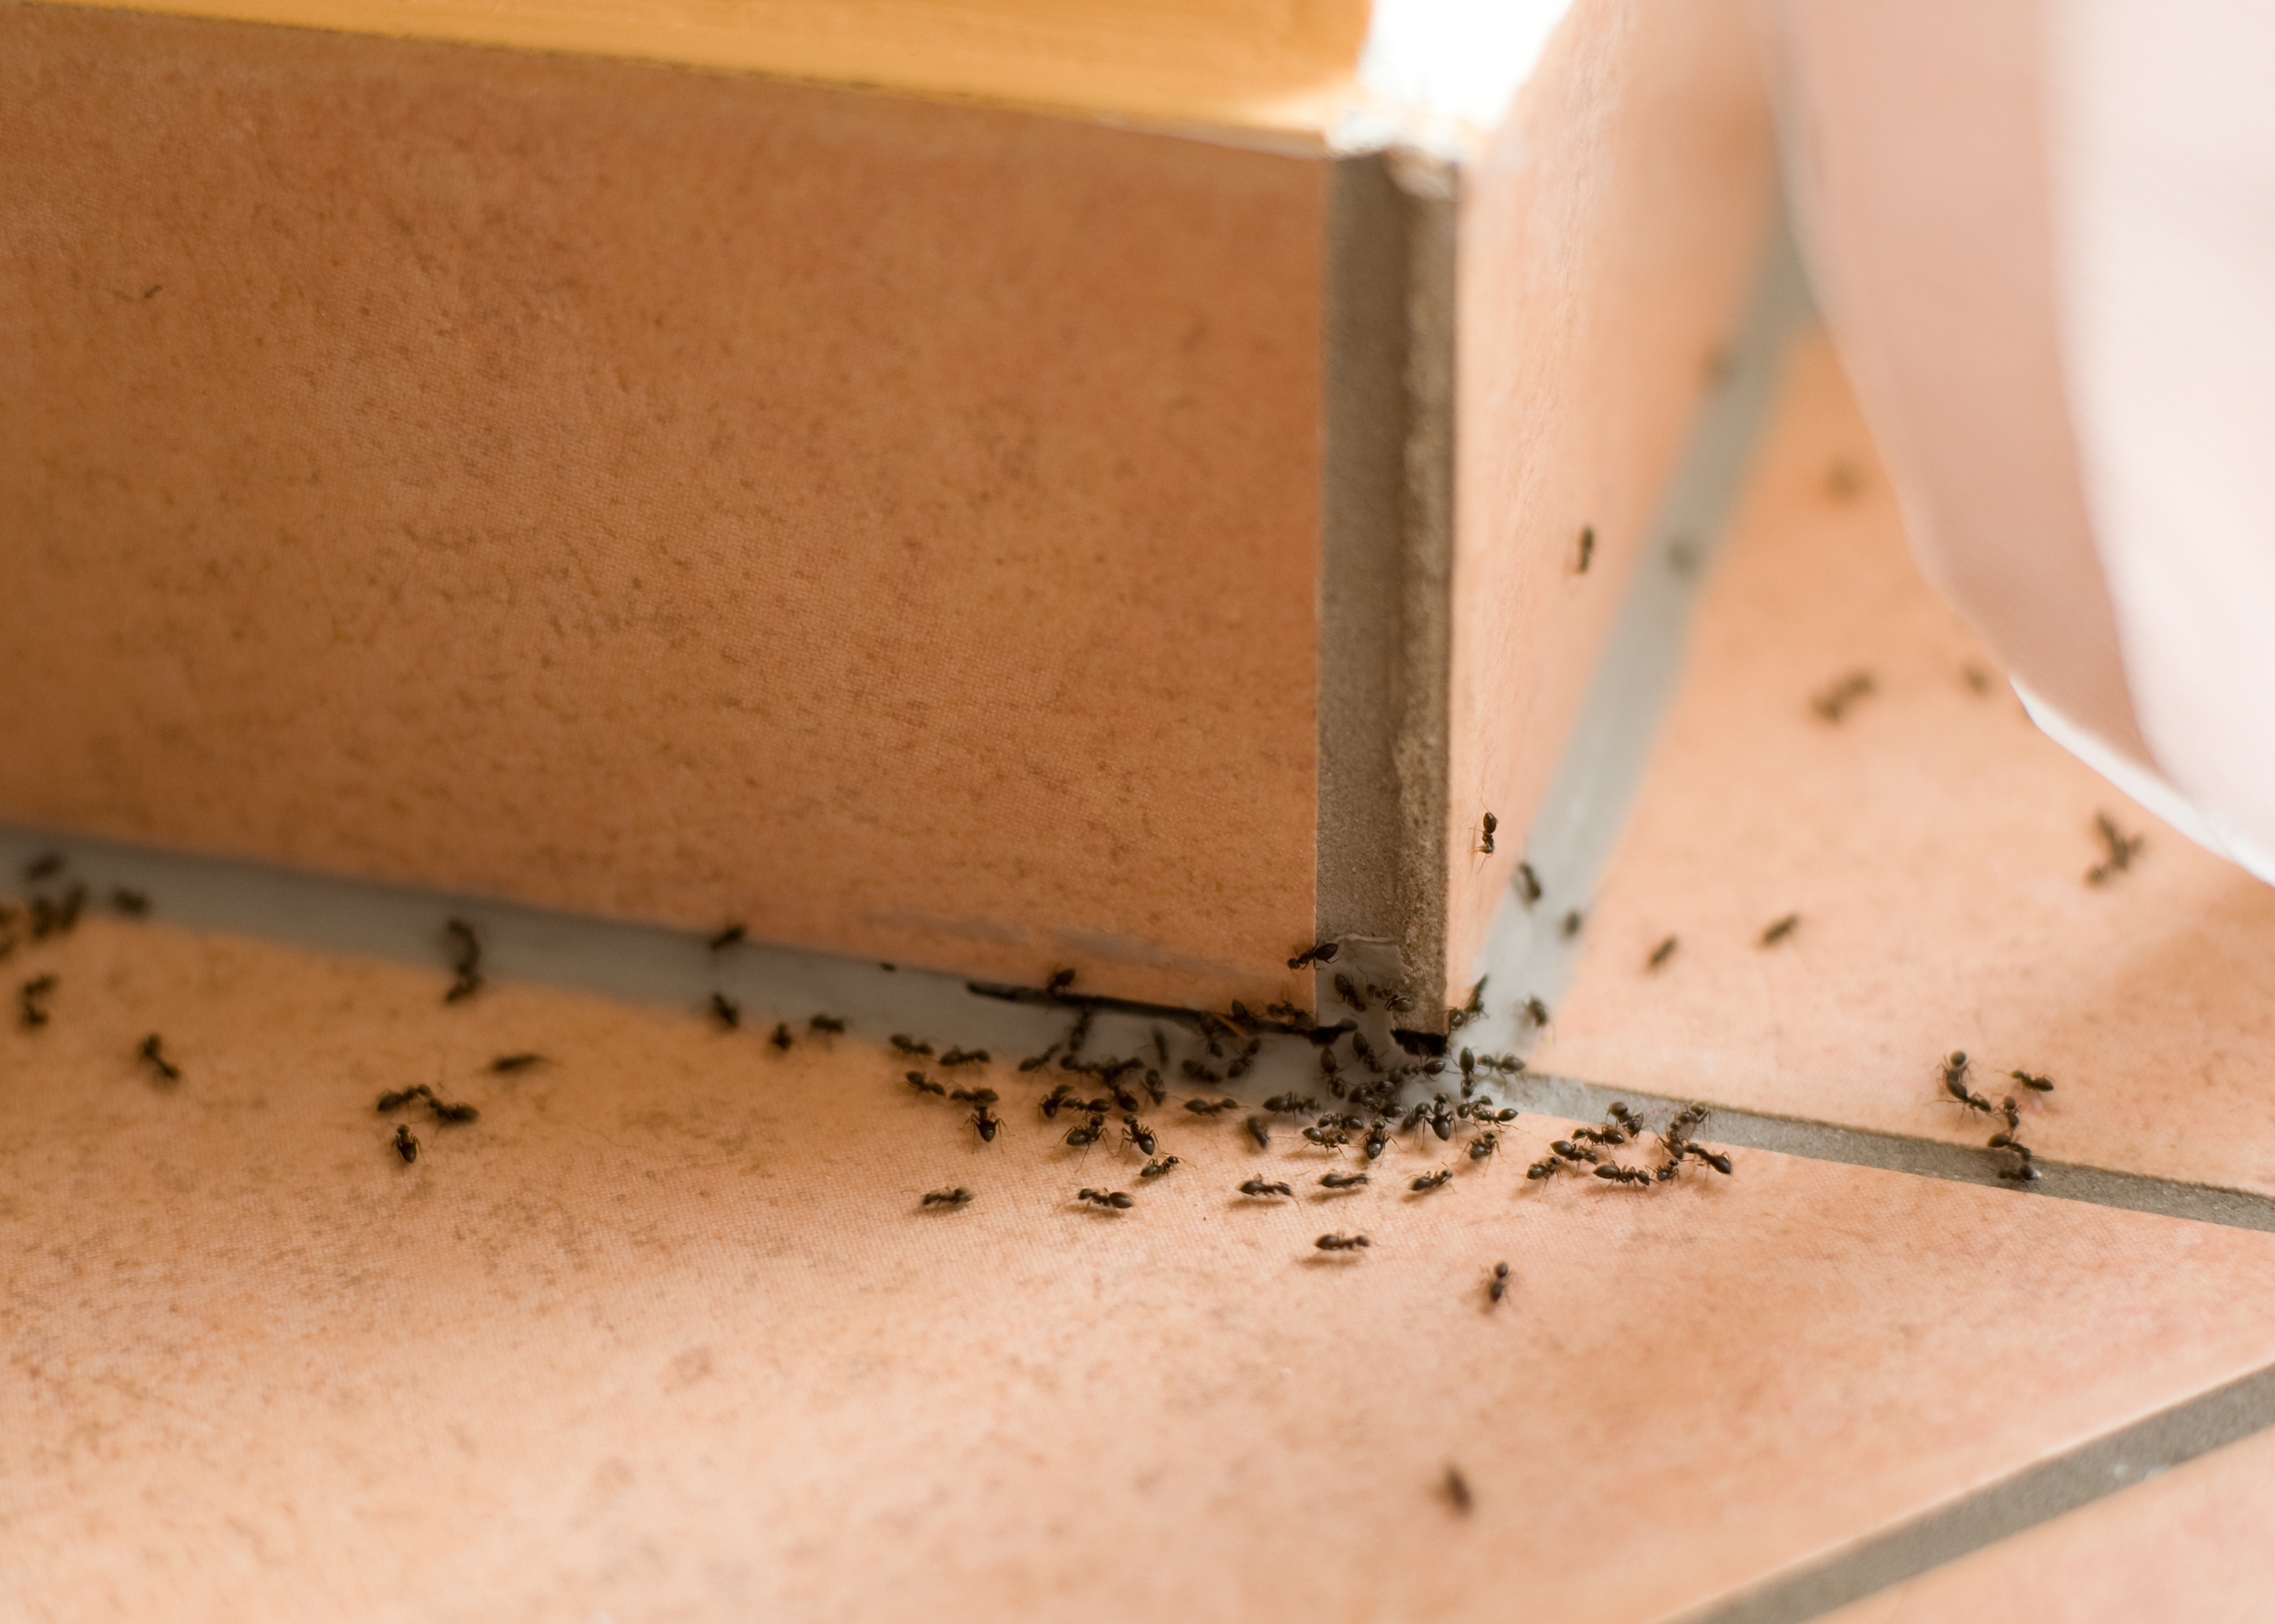 The Trick To Getting Rid Of Ants For Good It S Not A Spray The Washington Post